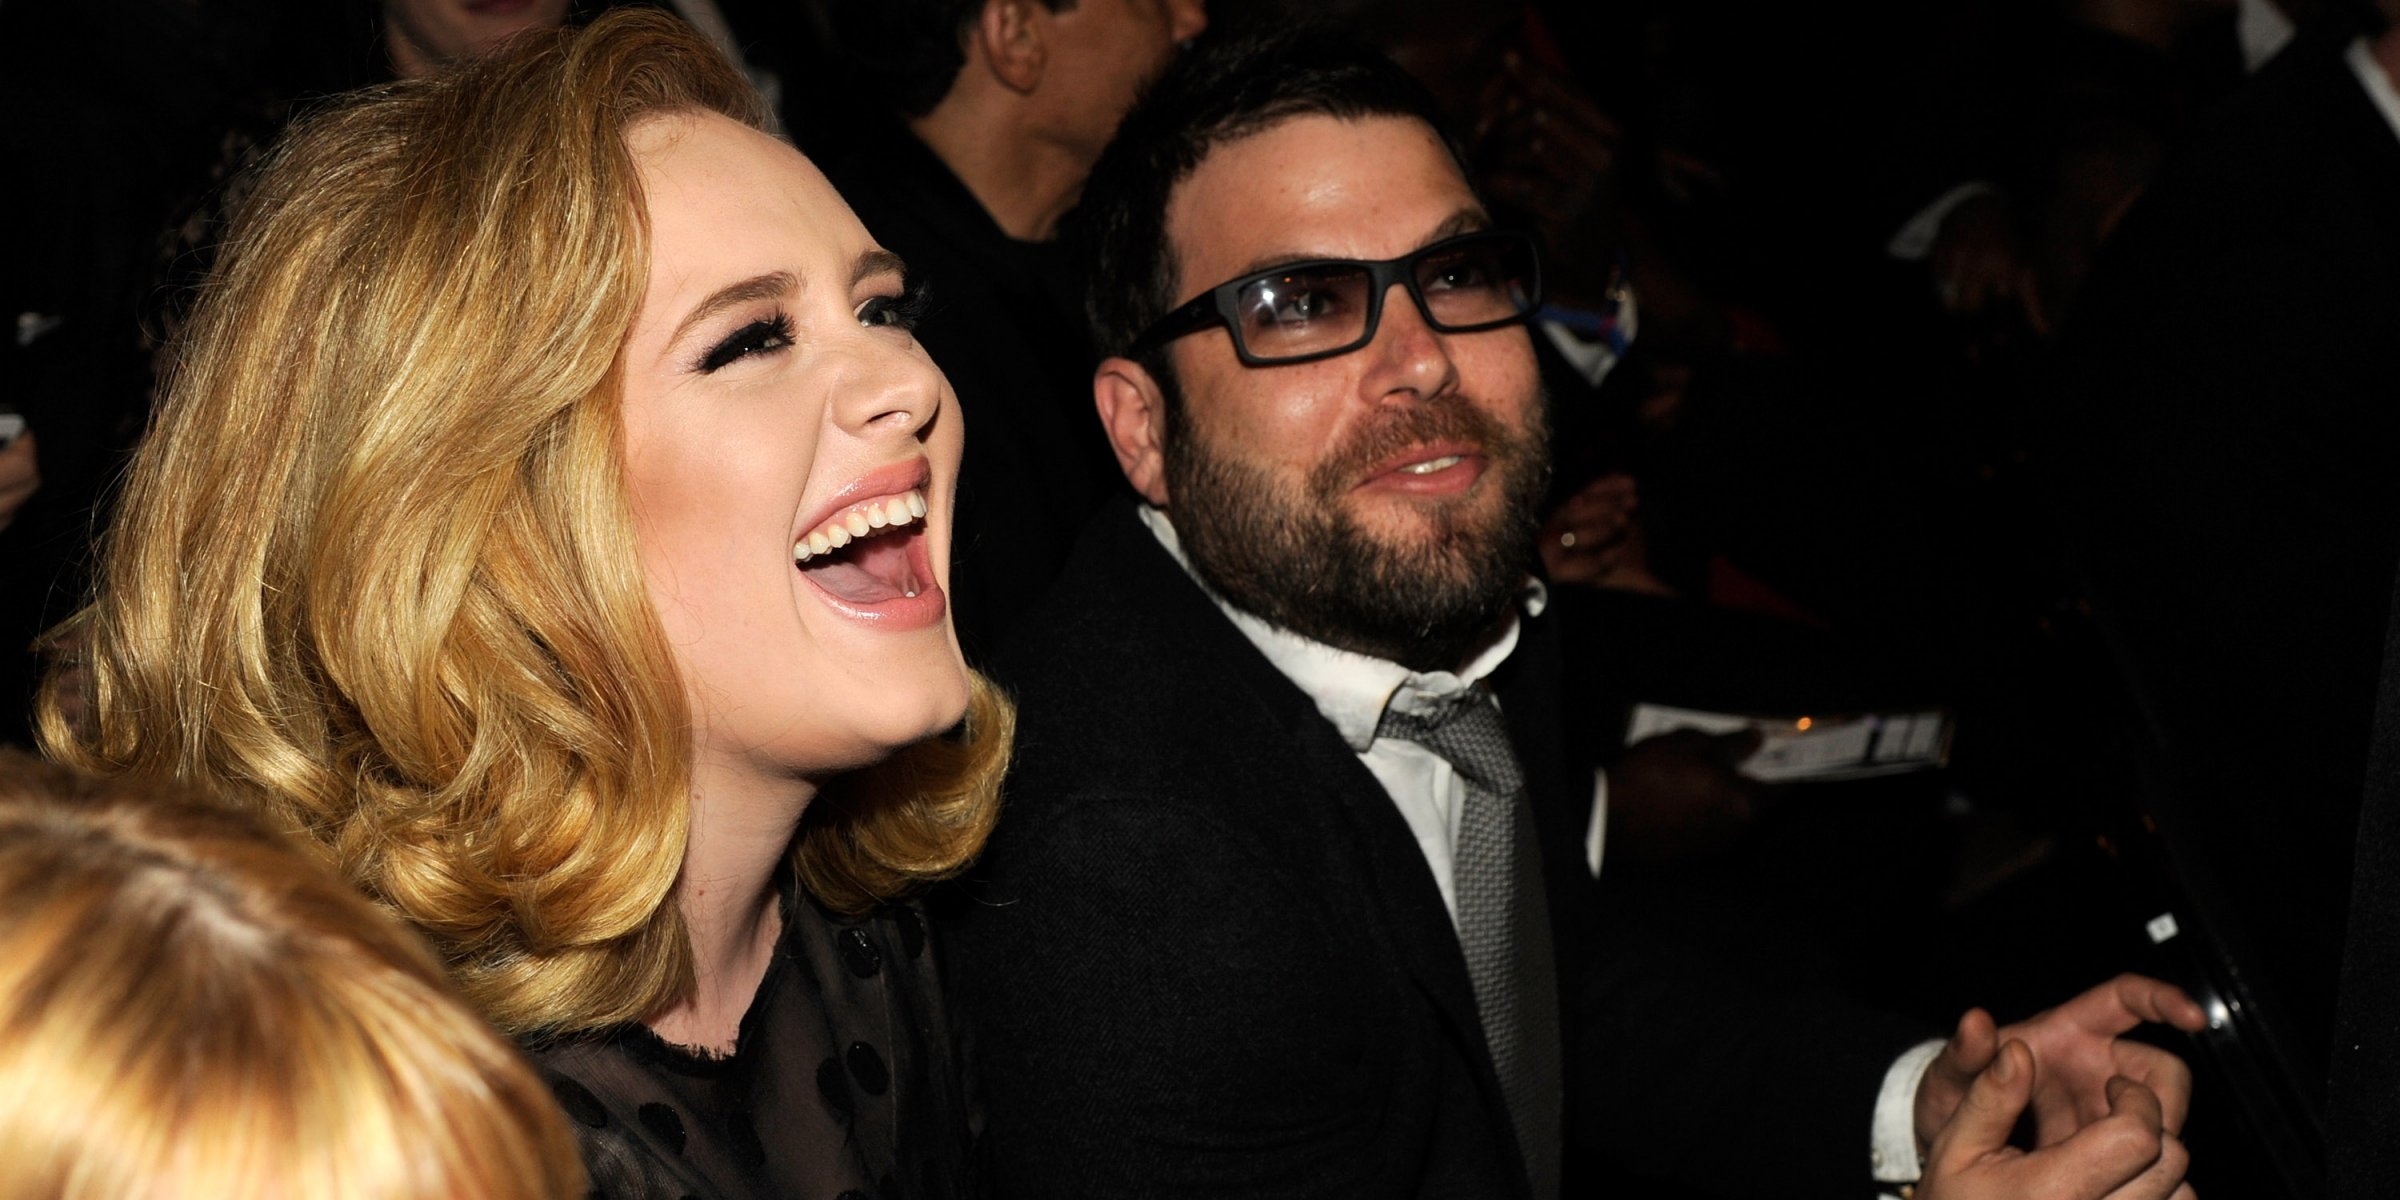 7402af28 e032 4f43 b36c 8bd76492b45e - Adele files for divorce from husband, Simon Konecki